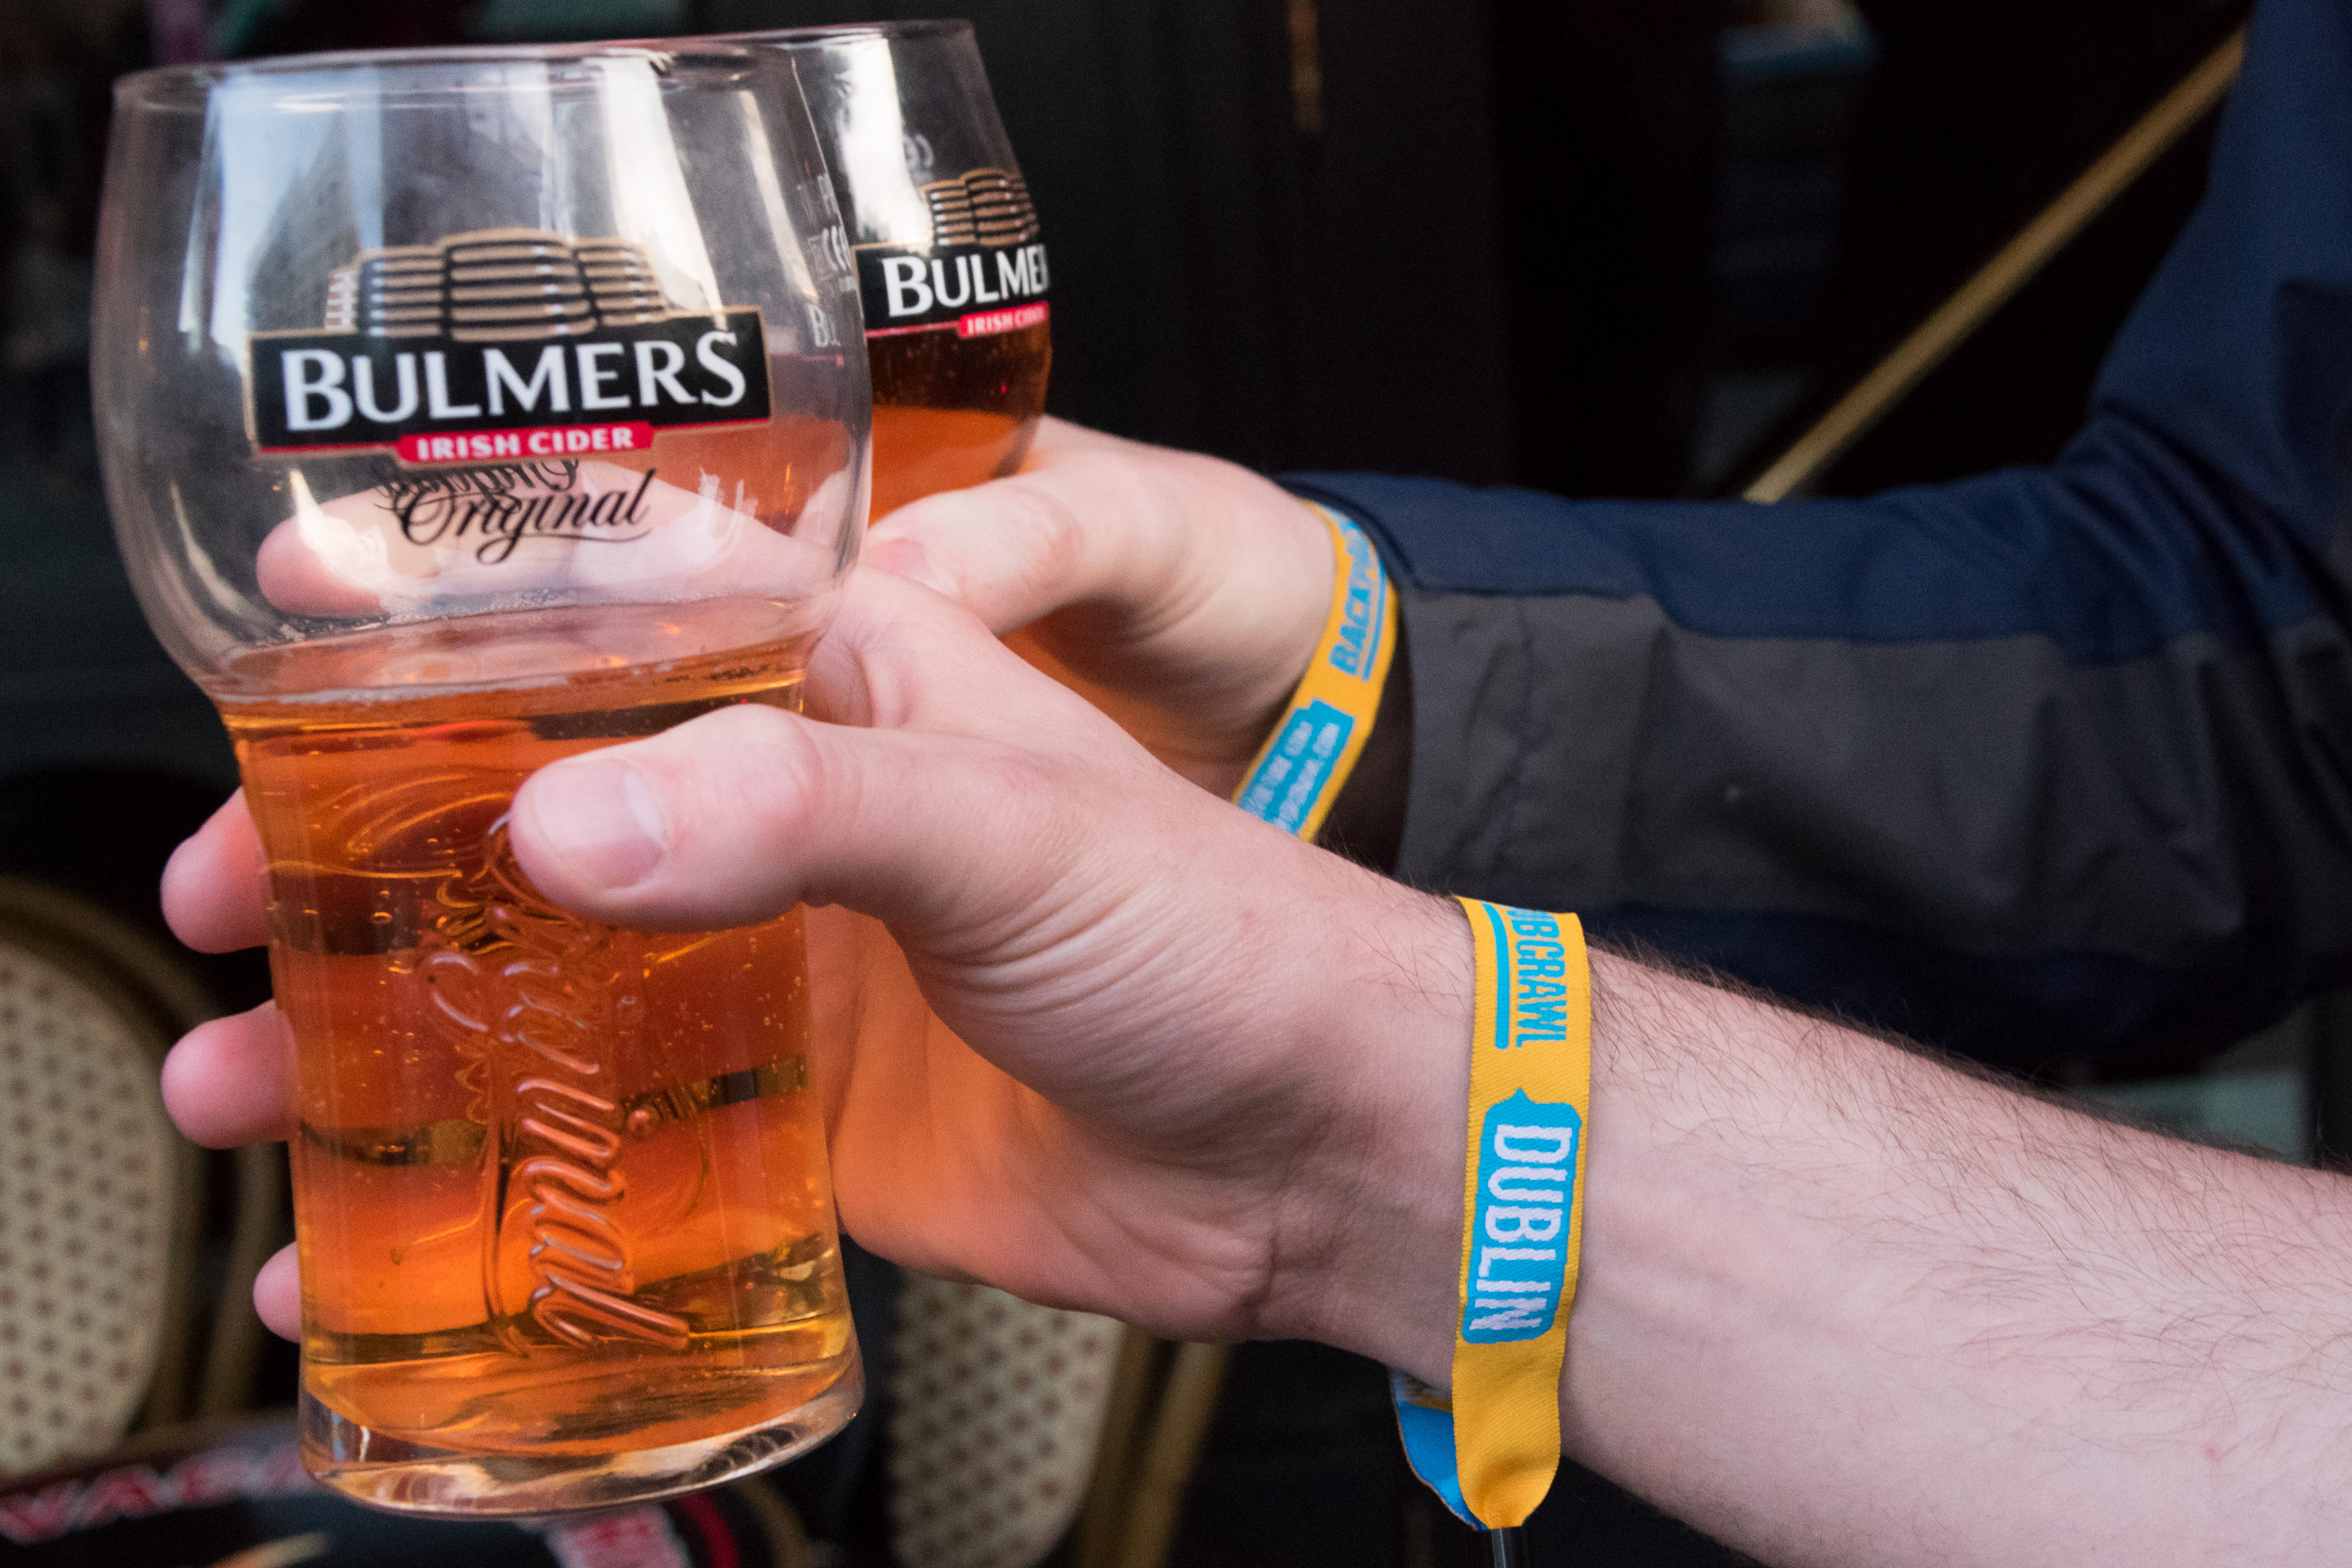 Two hands holding glasses of beer and displaying Dublin pub crawl wristbands during a bar crawl in Dublin city, Ireland